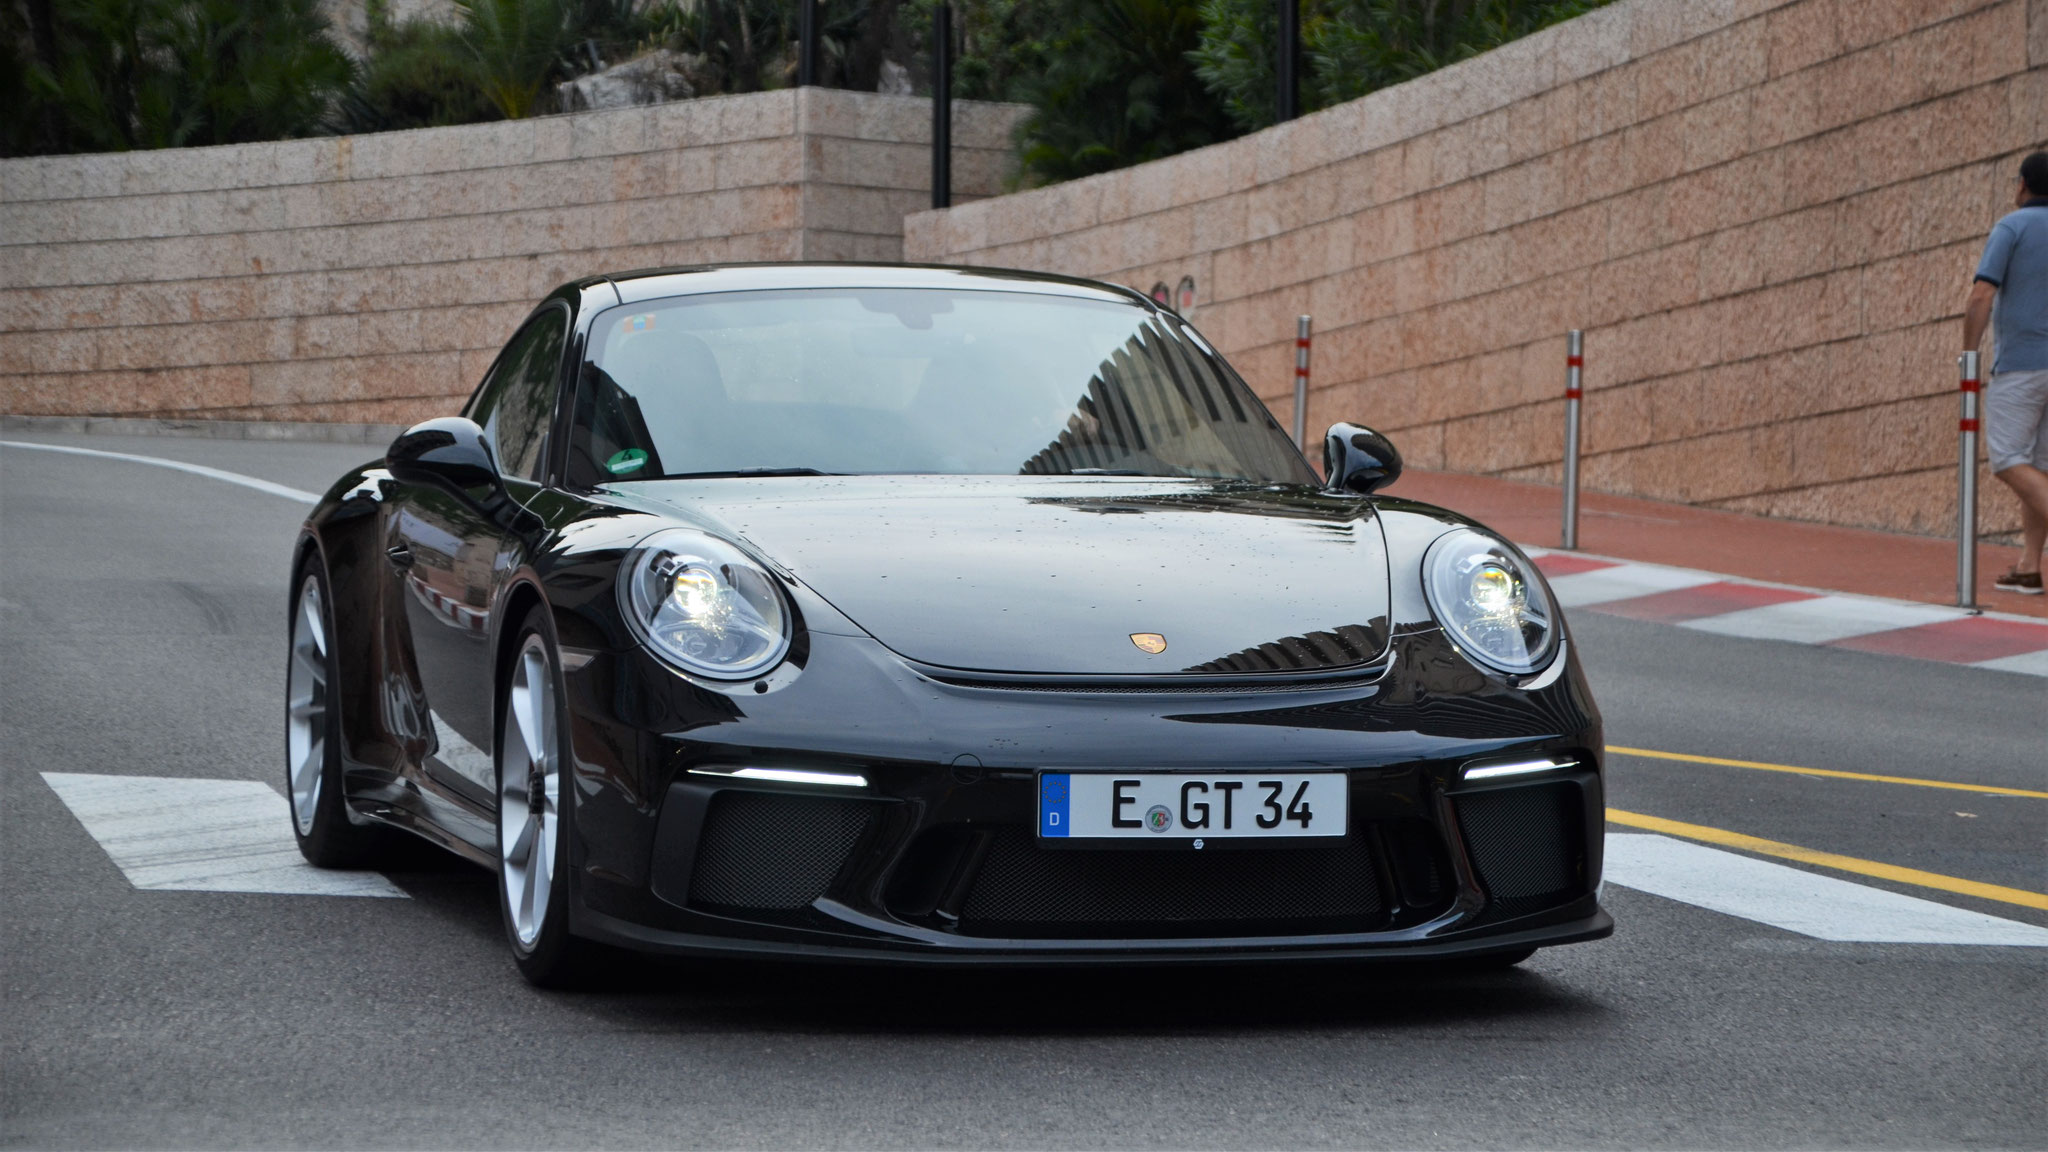 Porsche 991 GT3 Touring Package - E-GT-34